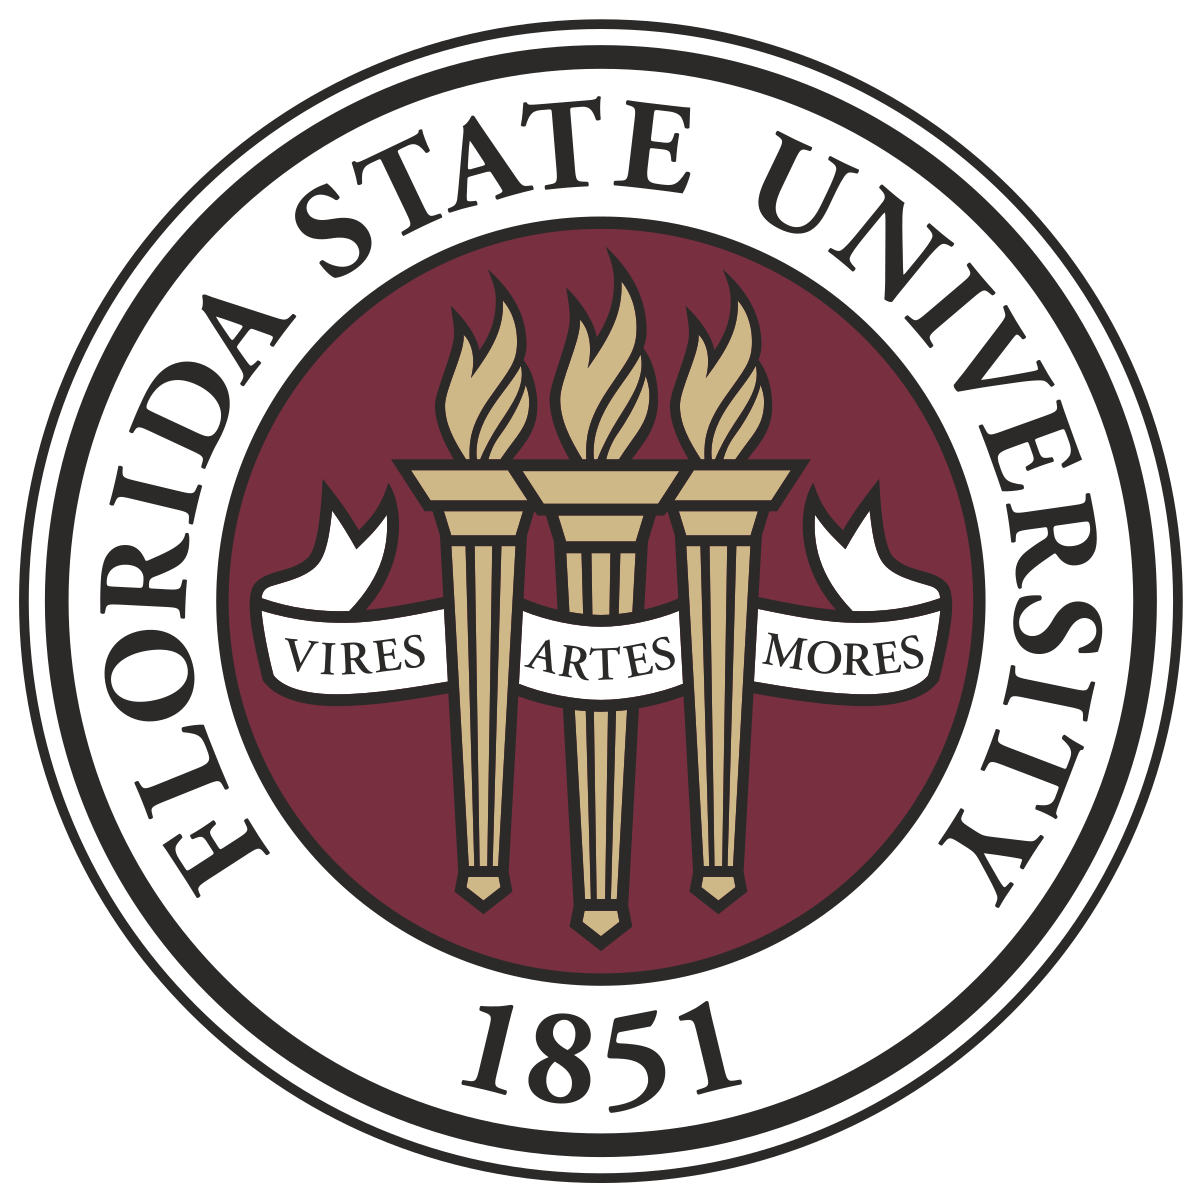 Florida state university logo png. Wikipedia best film schools